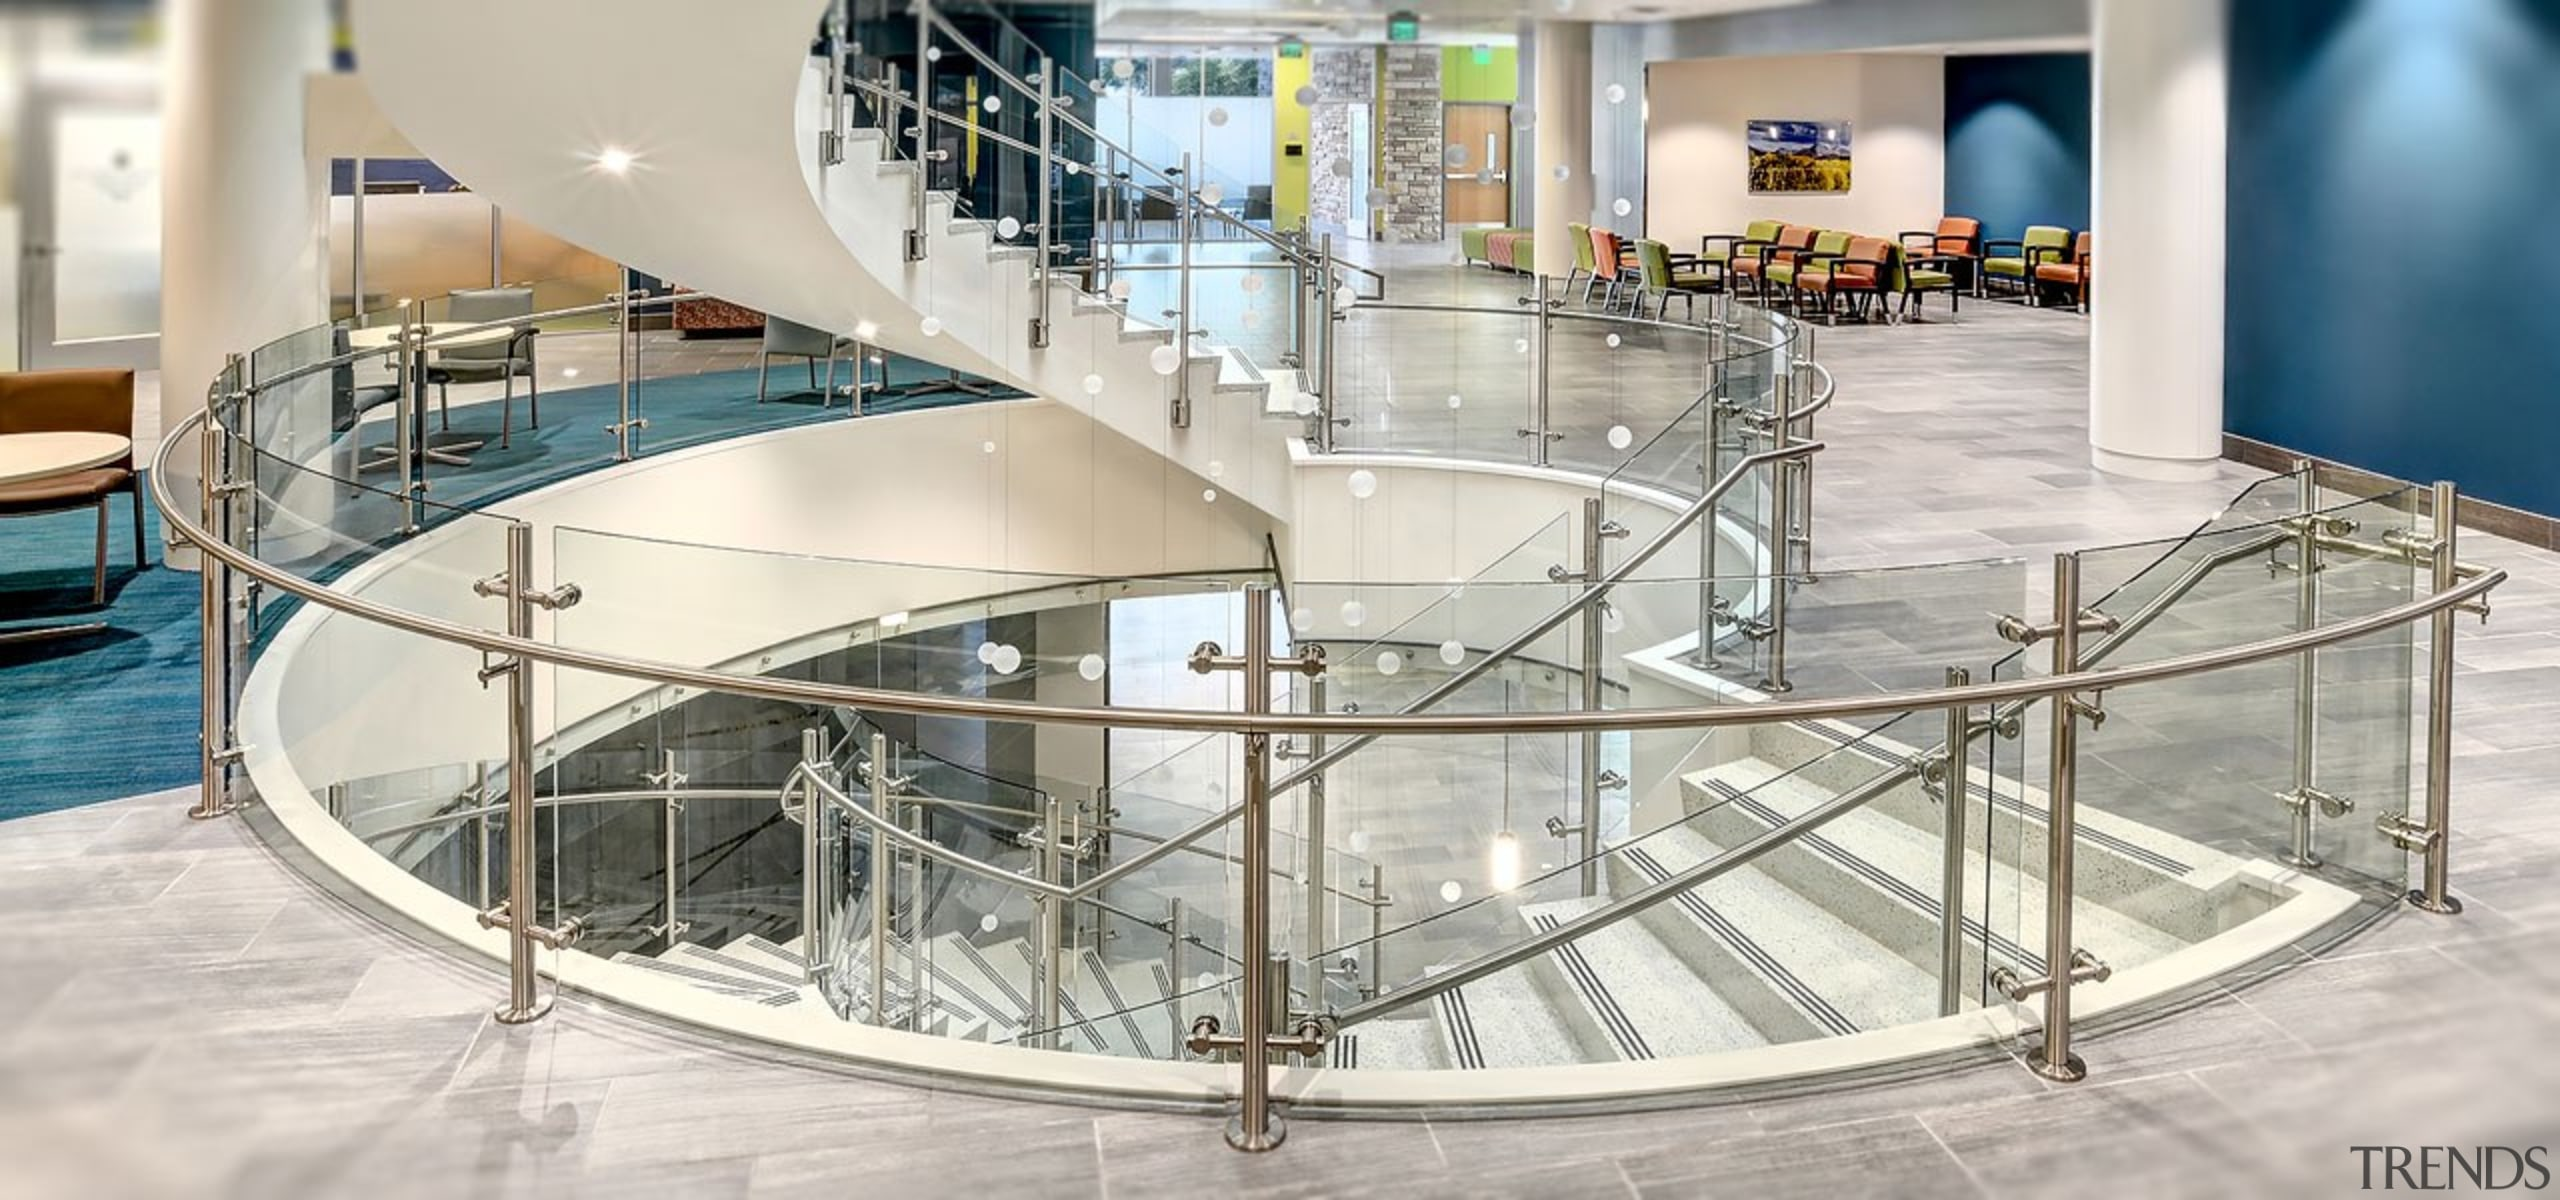 Colorado State University6 - architecture | building | architecture, building, glass, handrail, interior design, shopping mall, stairs, white